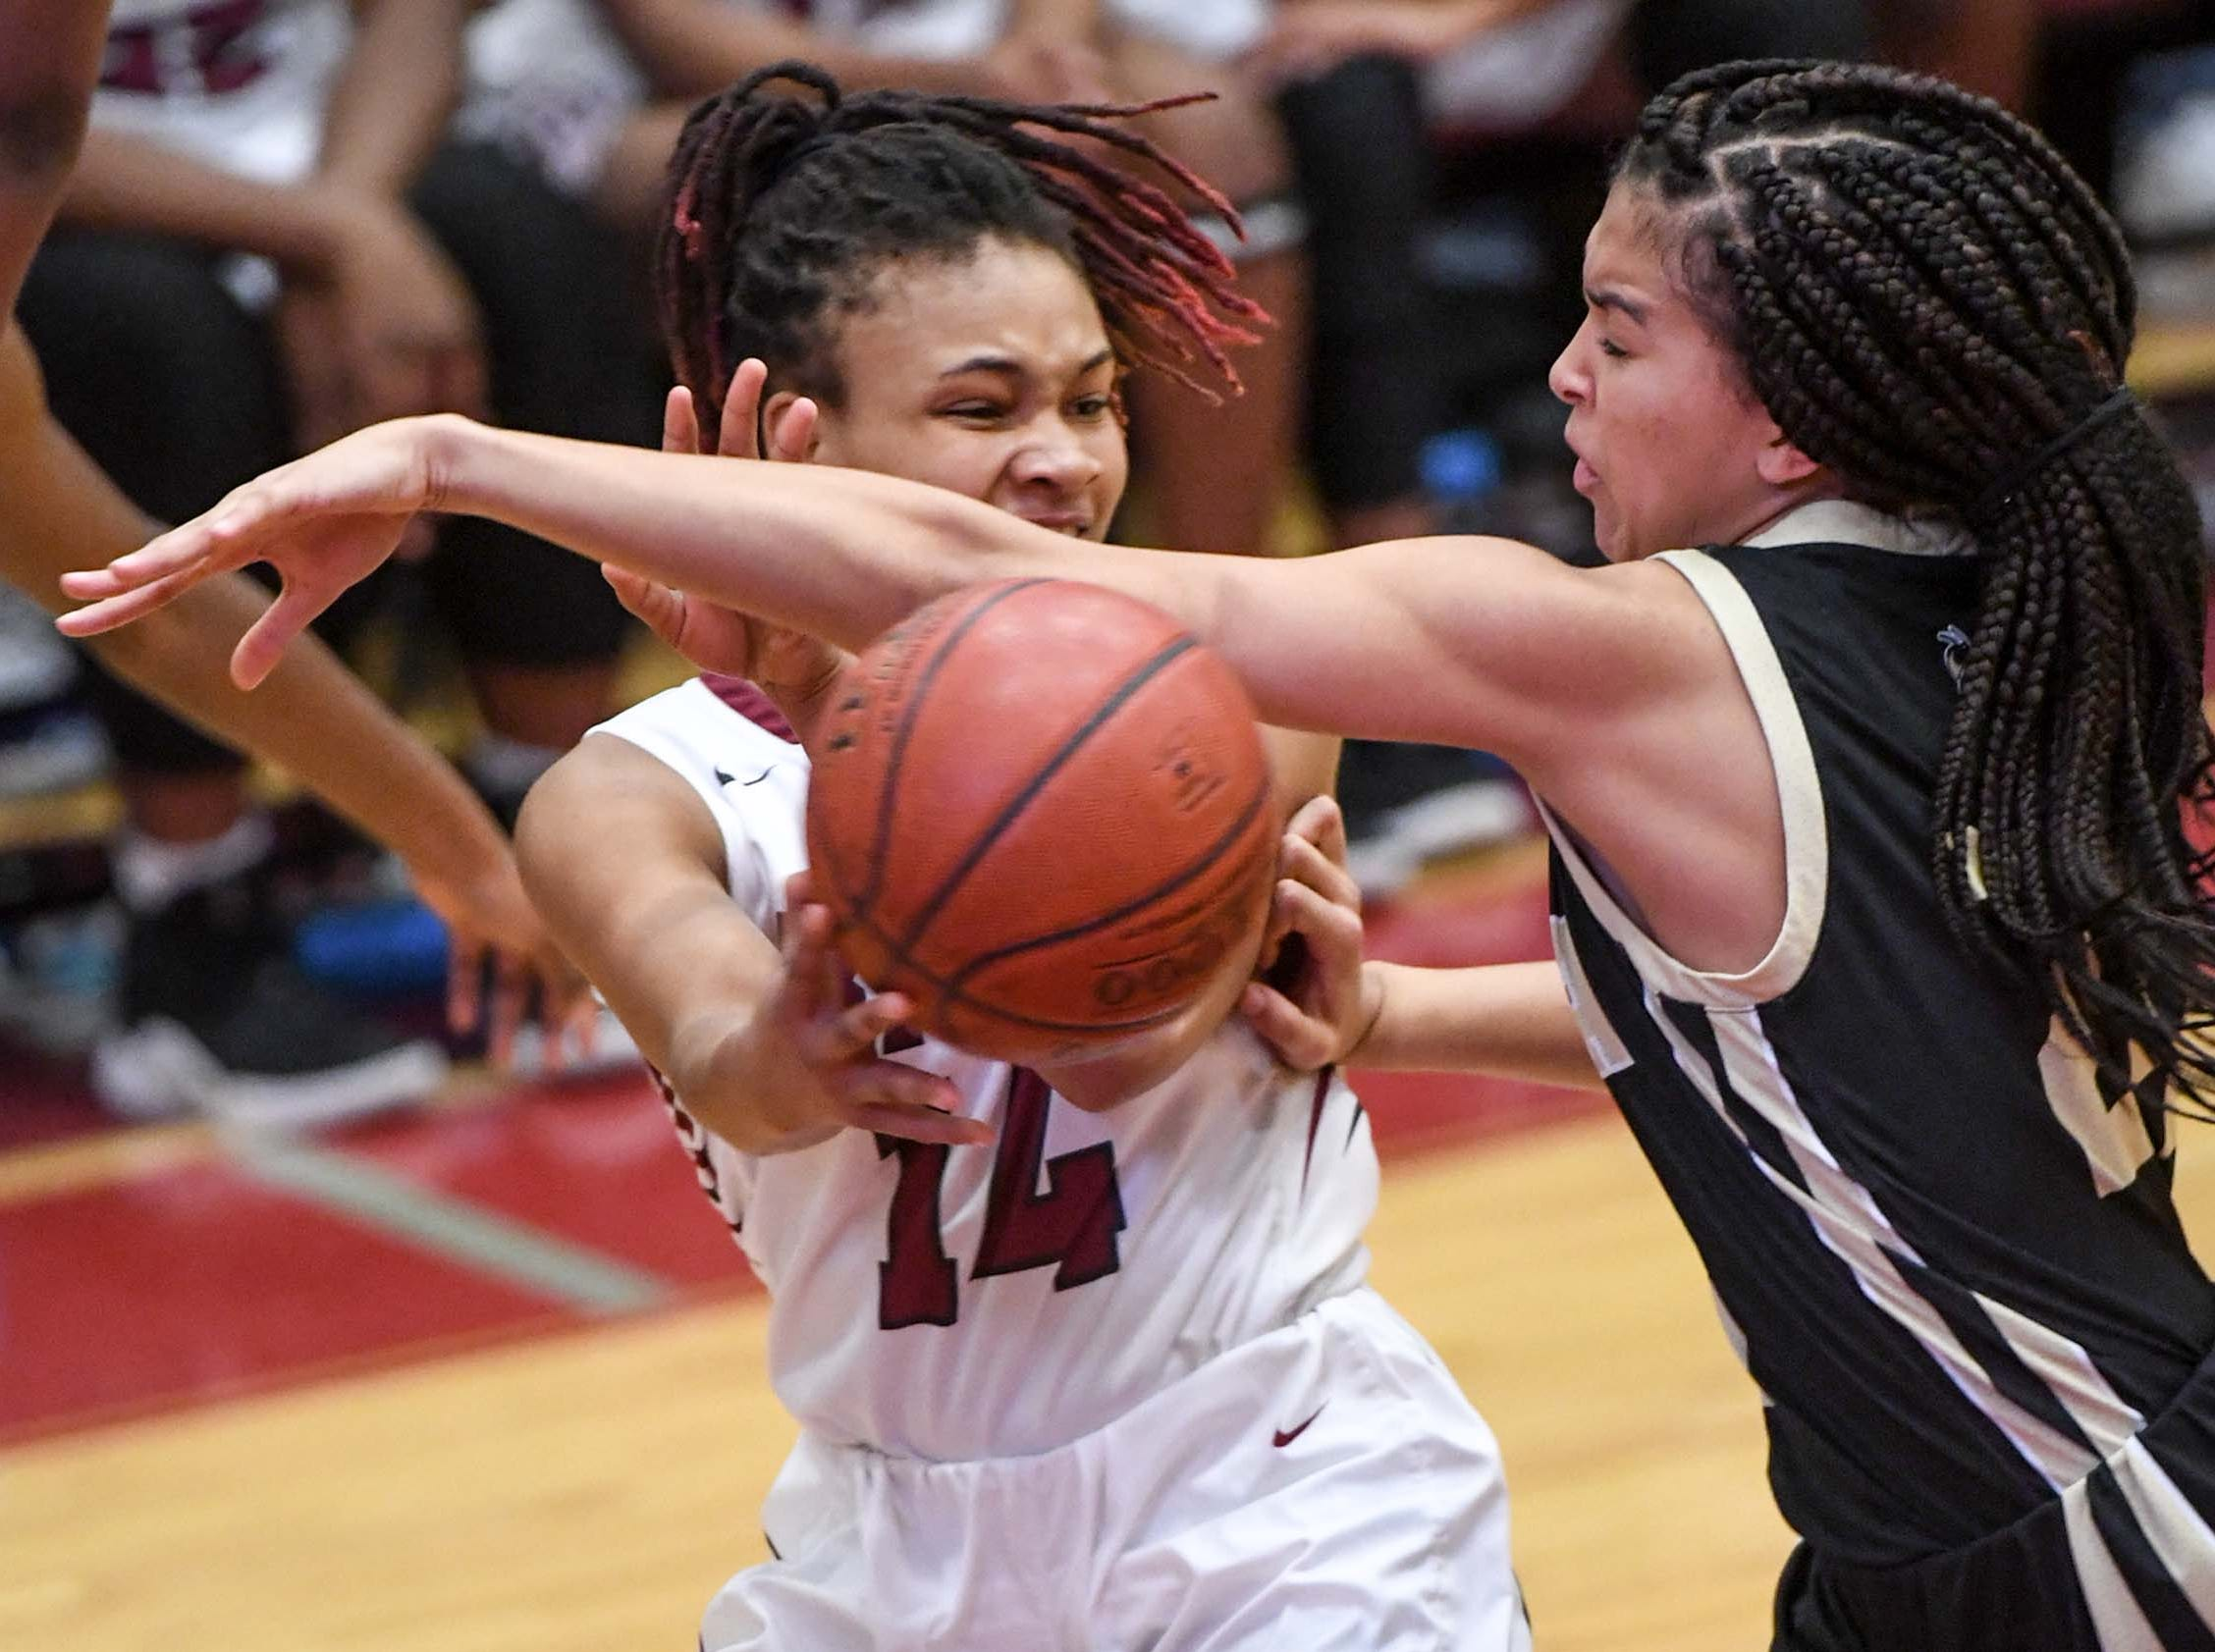 Westside junior Tatyana Lewis(14) passes around the defense of TL Hanna junior Maleia Bracone(24) during the fourth quarter at Westside High School in Anderson on Friday. Westside won 54-46.